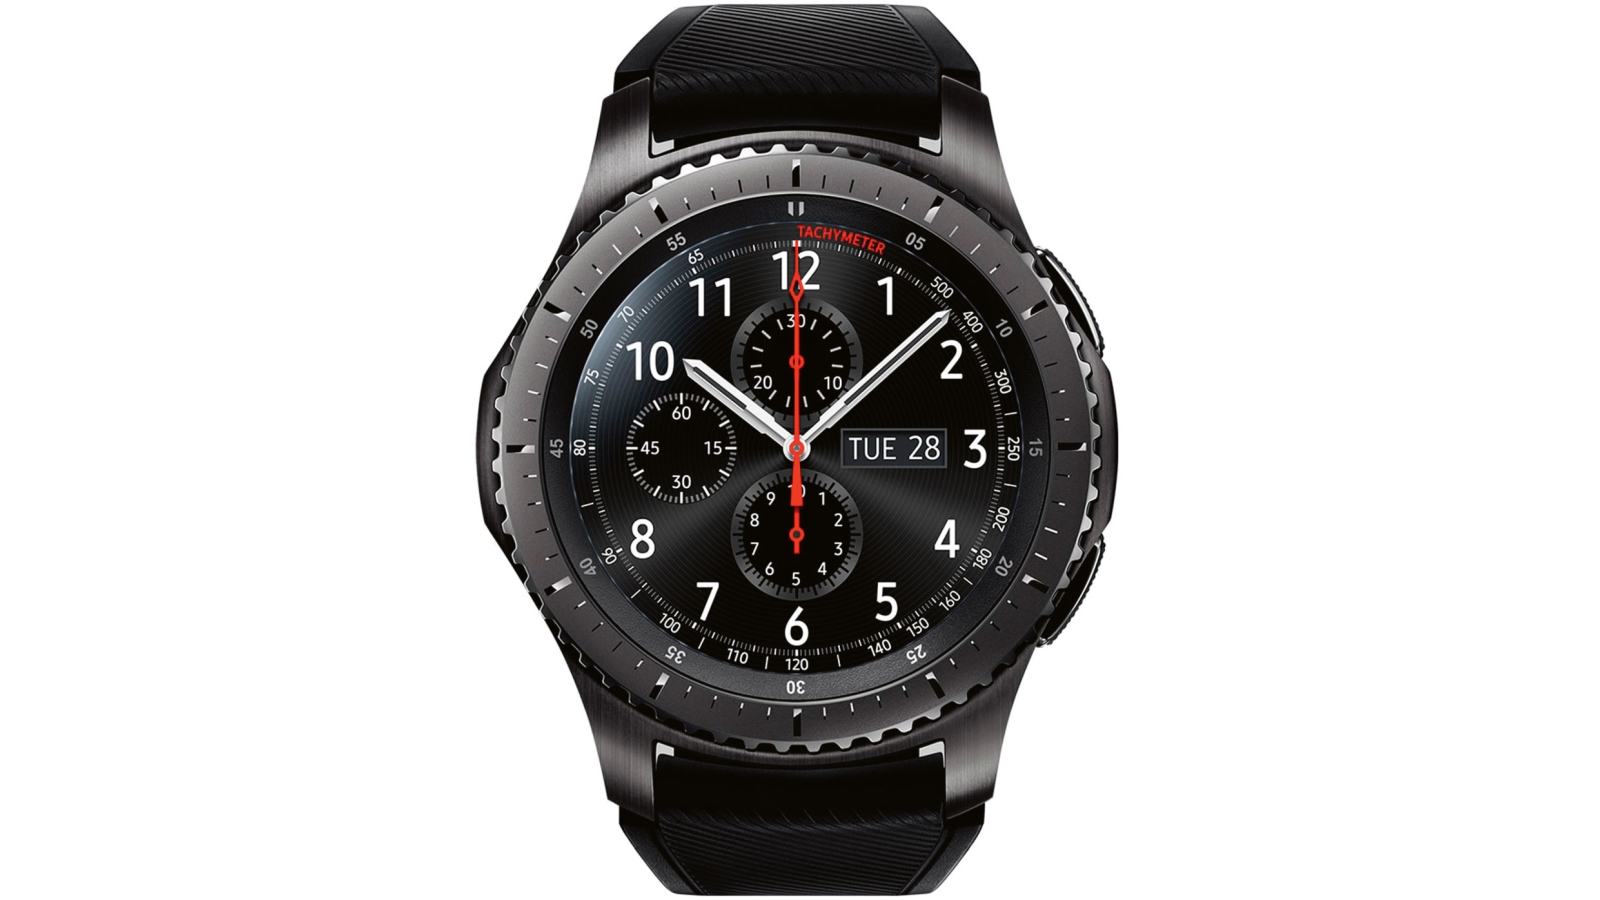 832e06d6f5af Samsung Gear S3 Frontier Smart Watch - Black - Harvey Norman